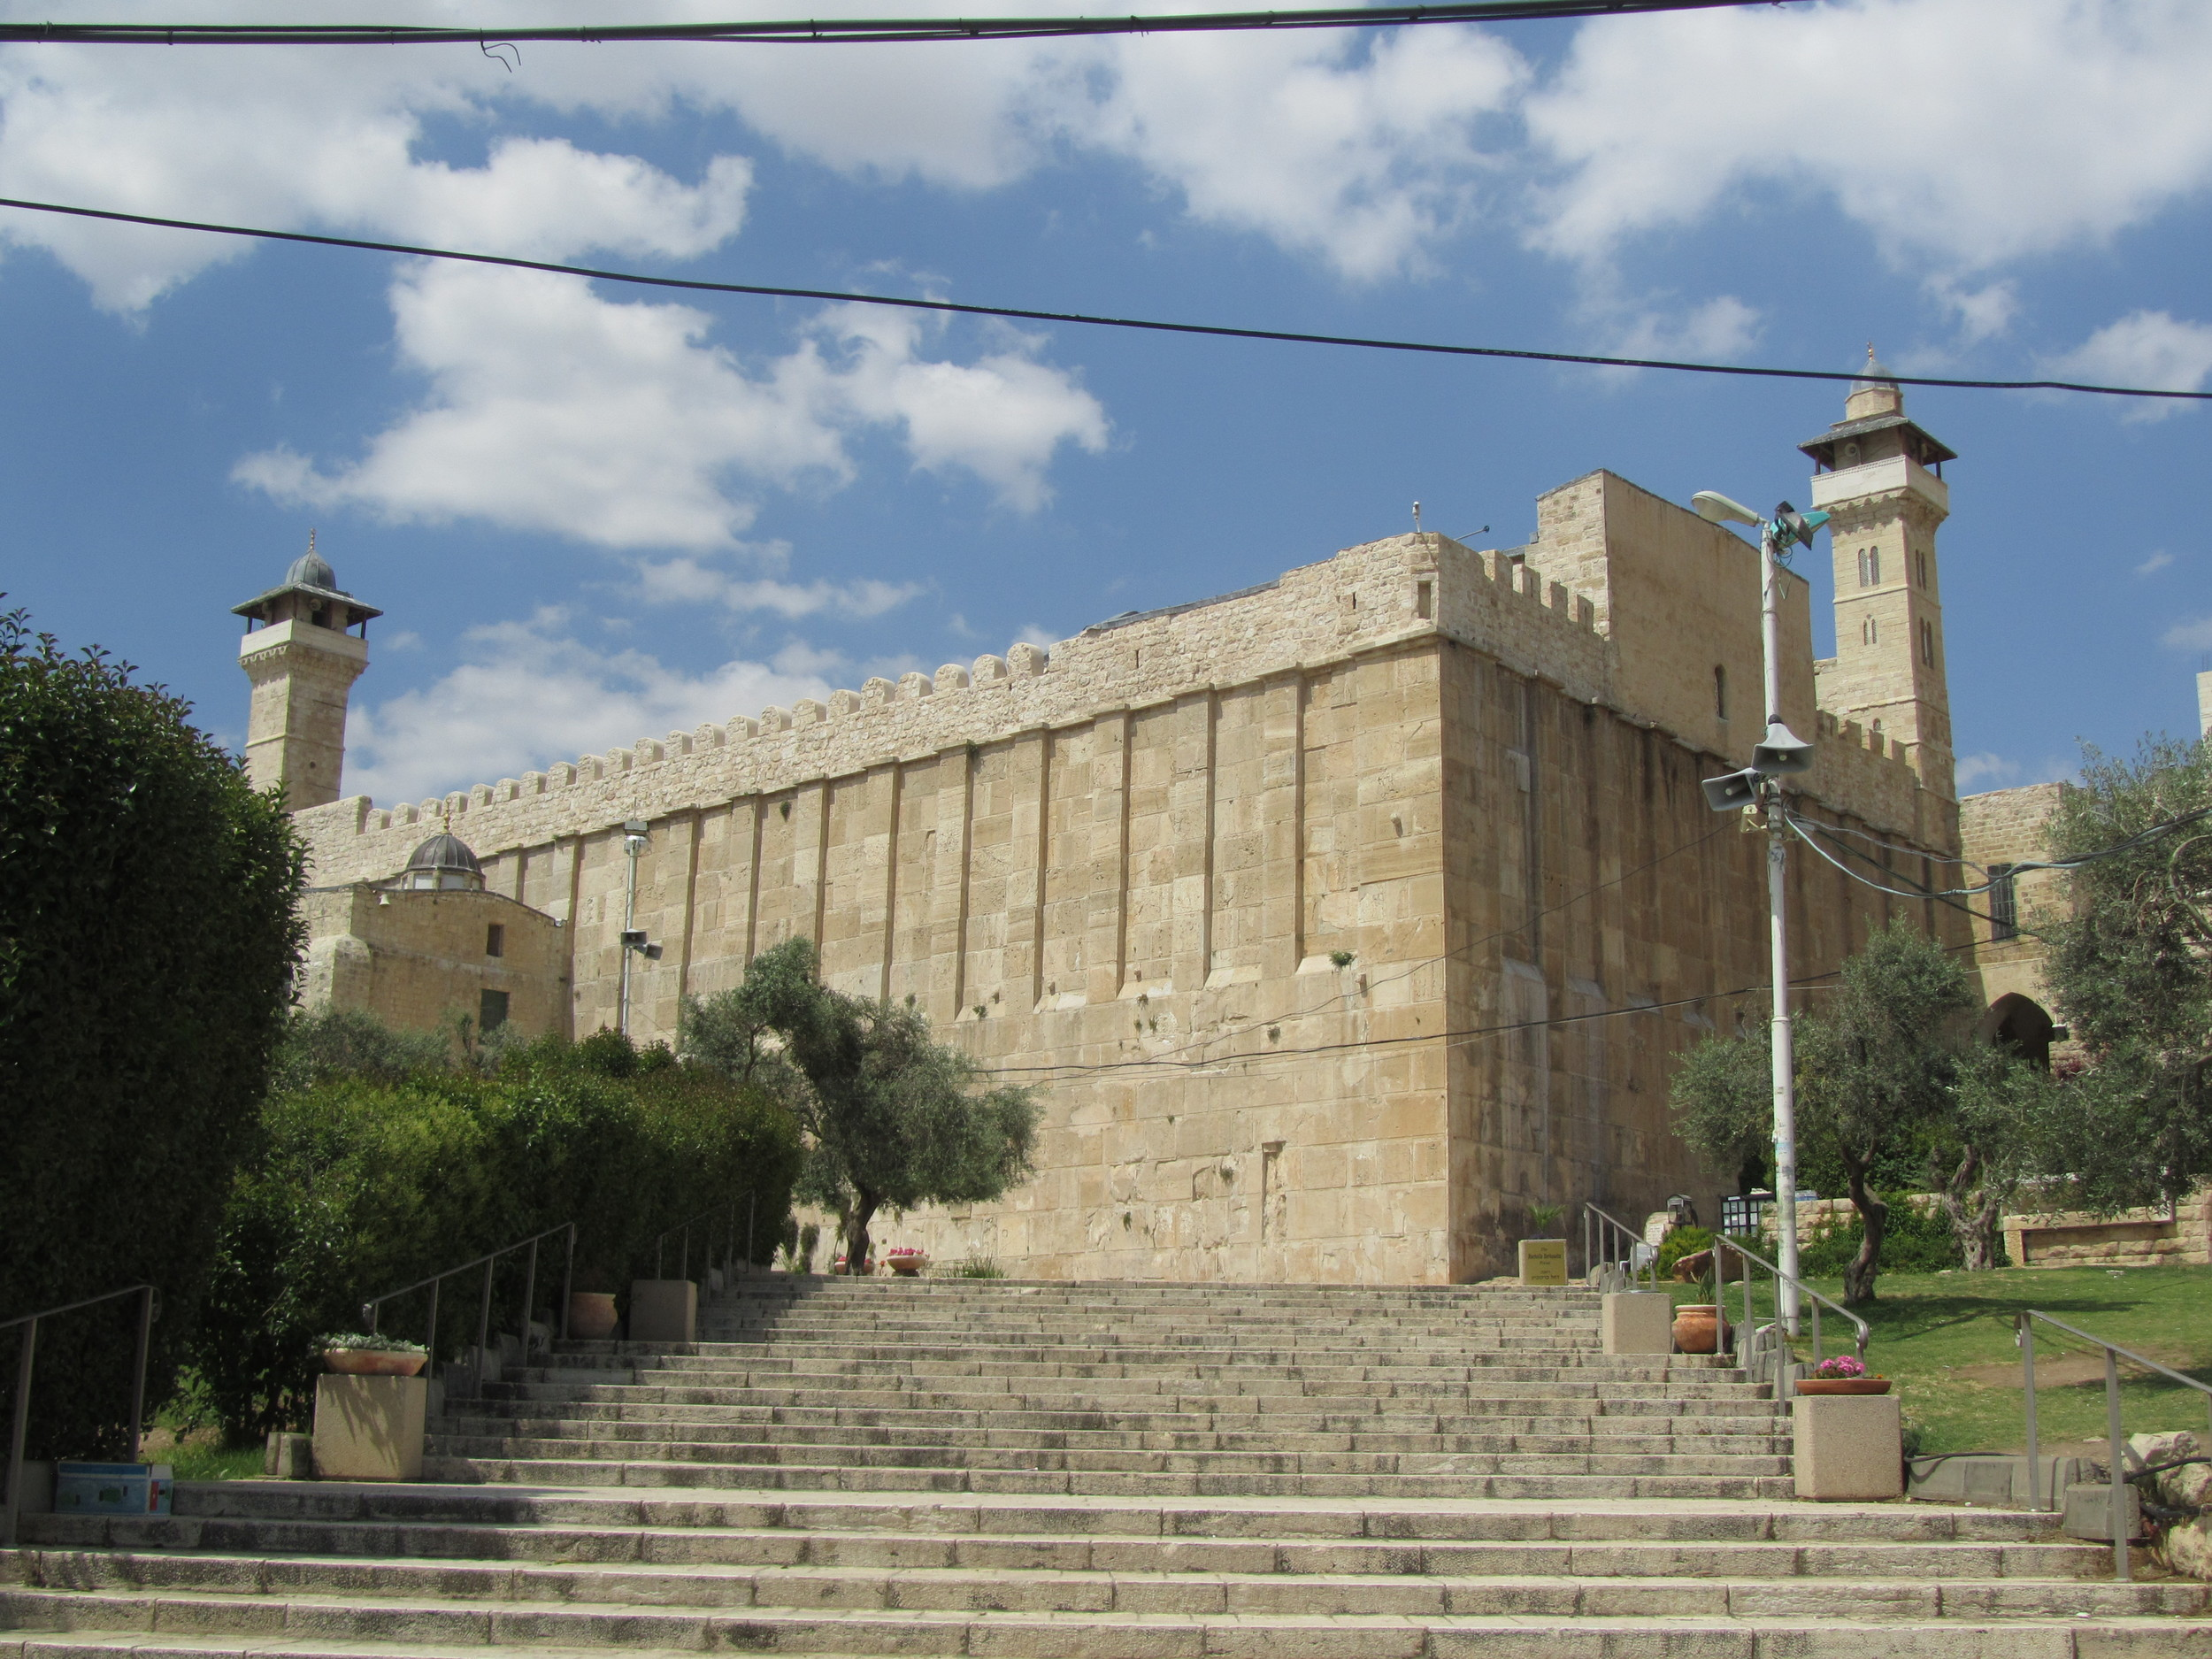 The Tomb of the Patriarchs, The Cave of Machpelah